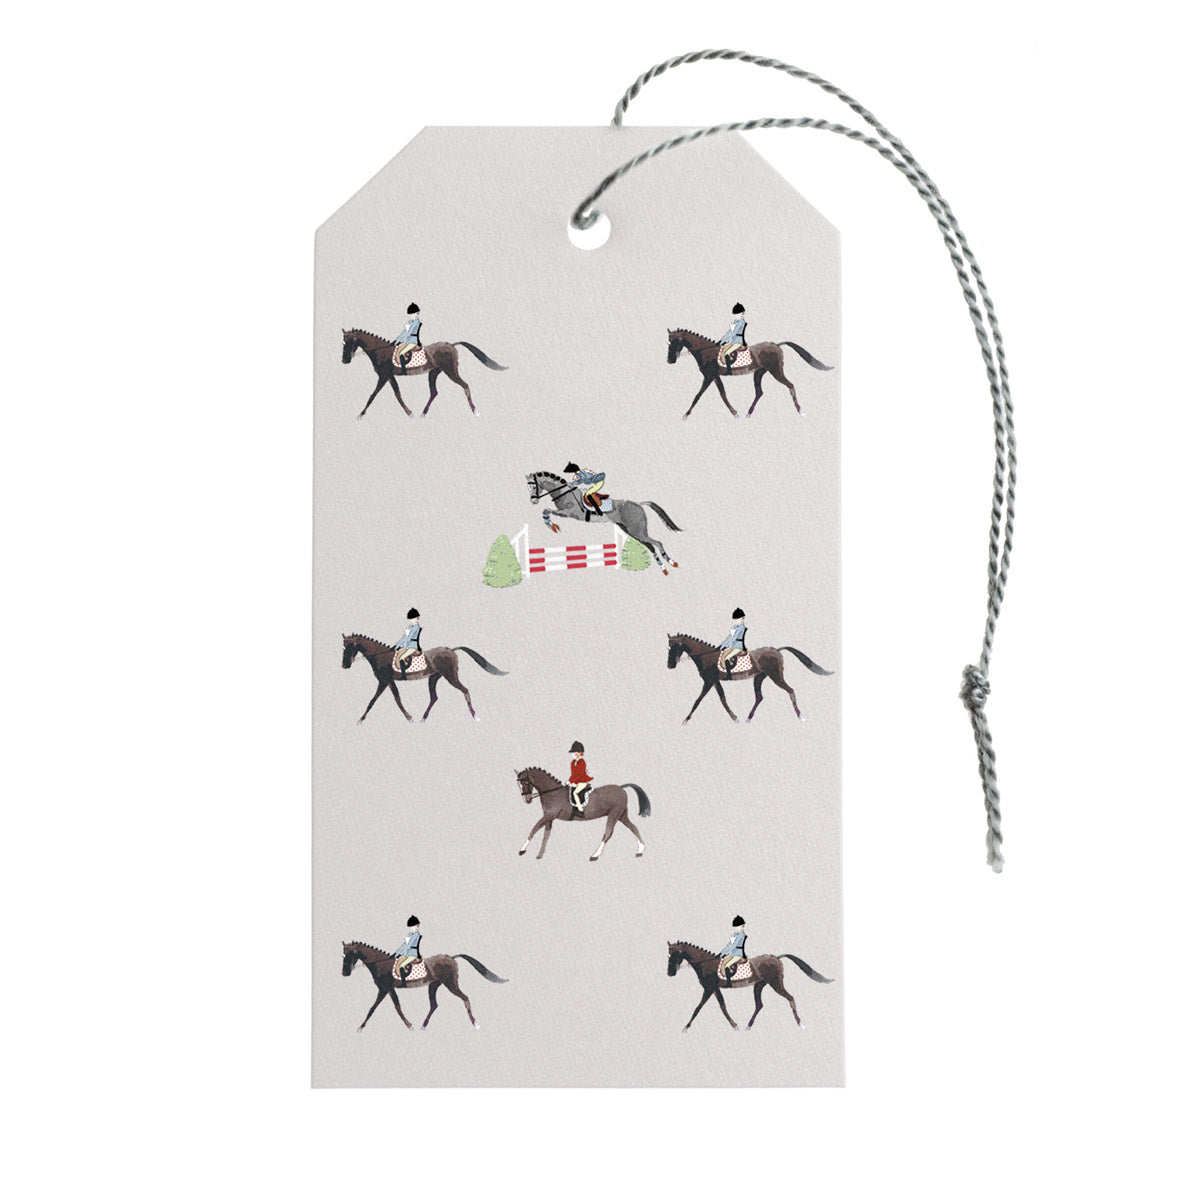 Horses Gift Tags - Set of 10